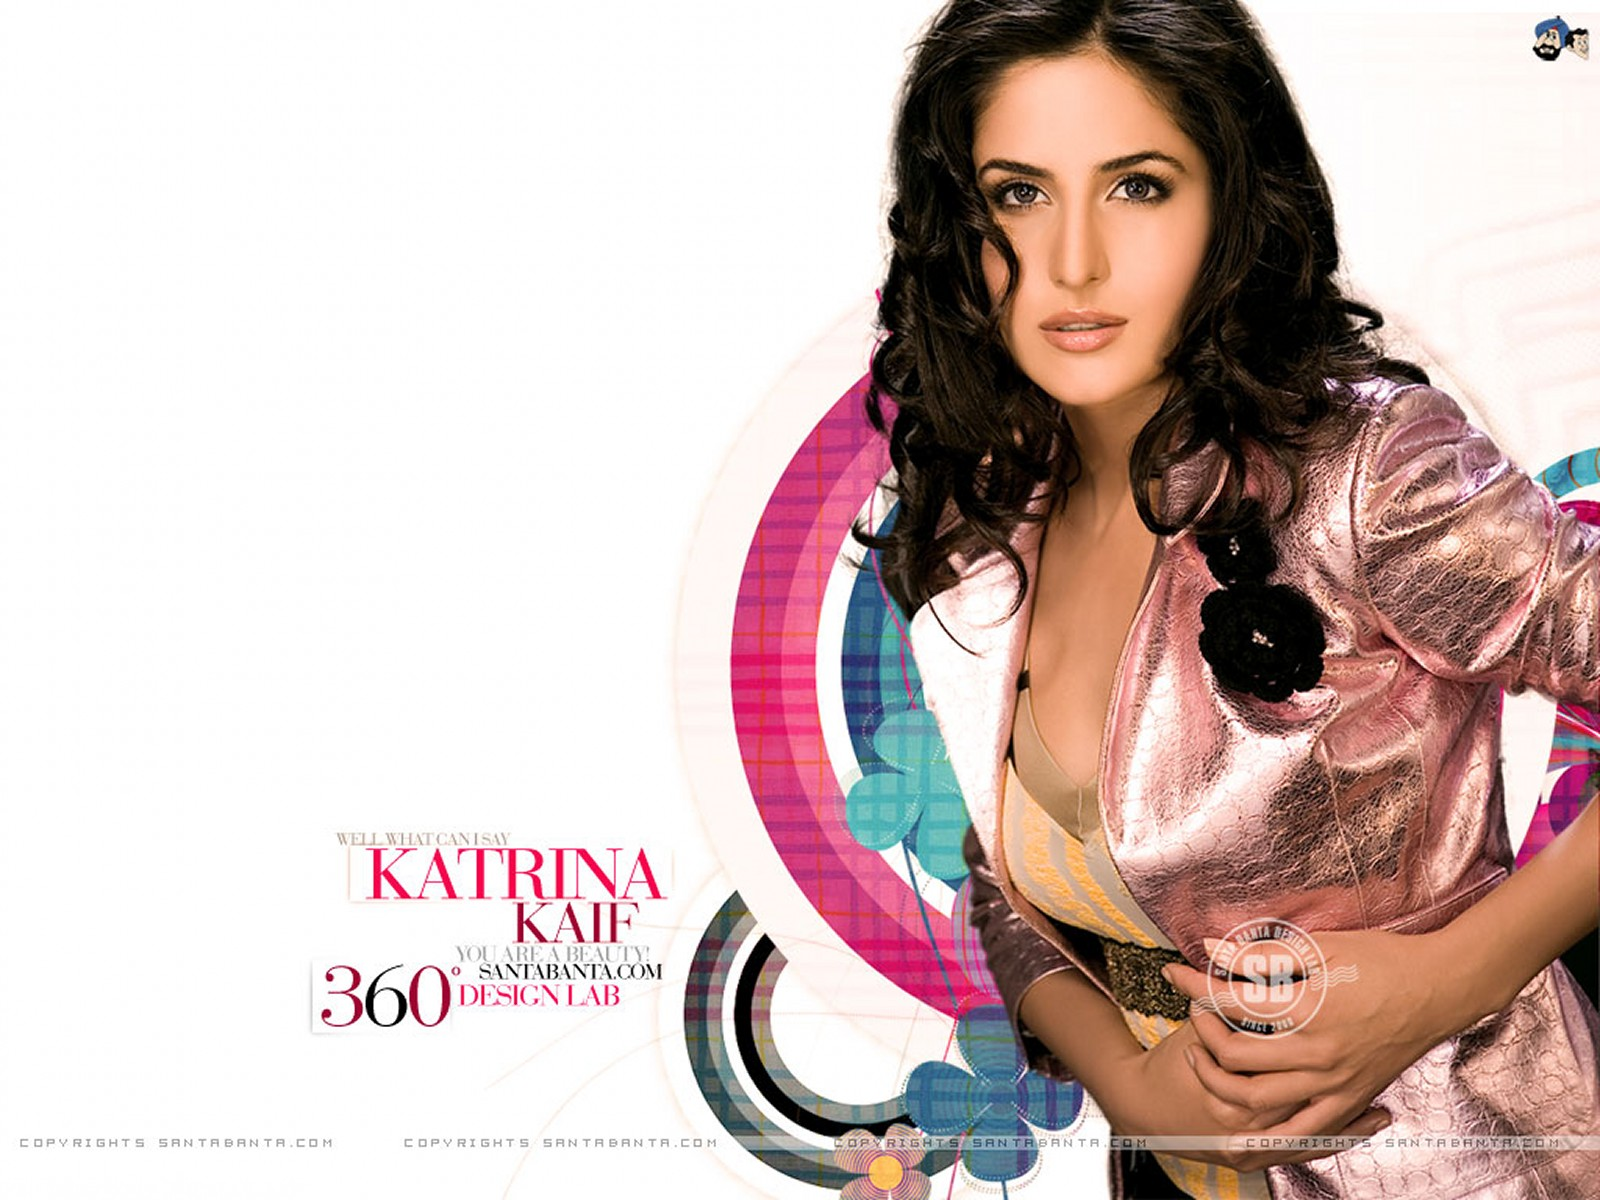 http://2.bp.blogspot.com/_WQHwEc3Av0E/S7cO-82Rw5I/AAAAAAAABWk/e9nAEJpQG0o/s1600/Katrina_Kaif_Wallpapers_49+(wallpapersbay.blogspot.com).jpg